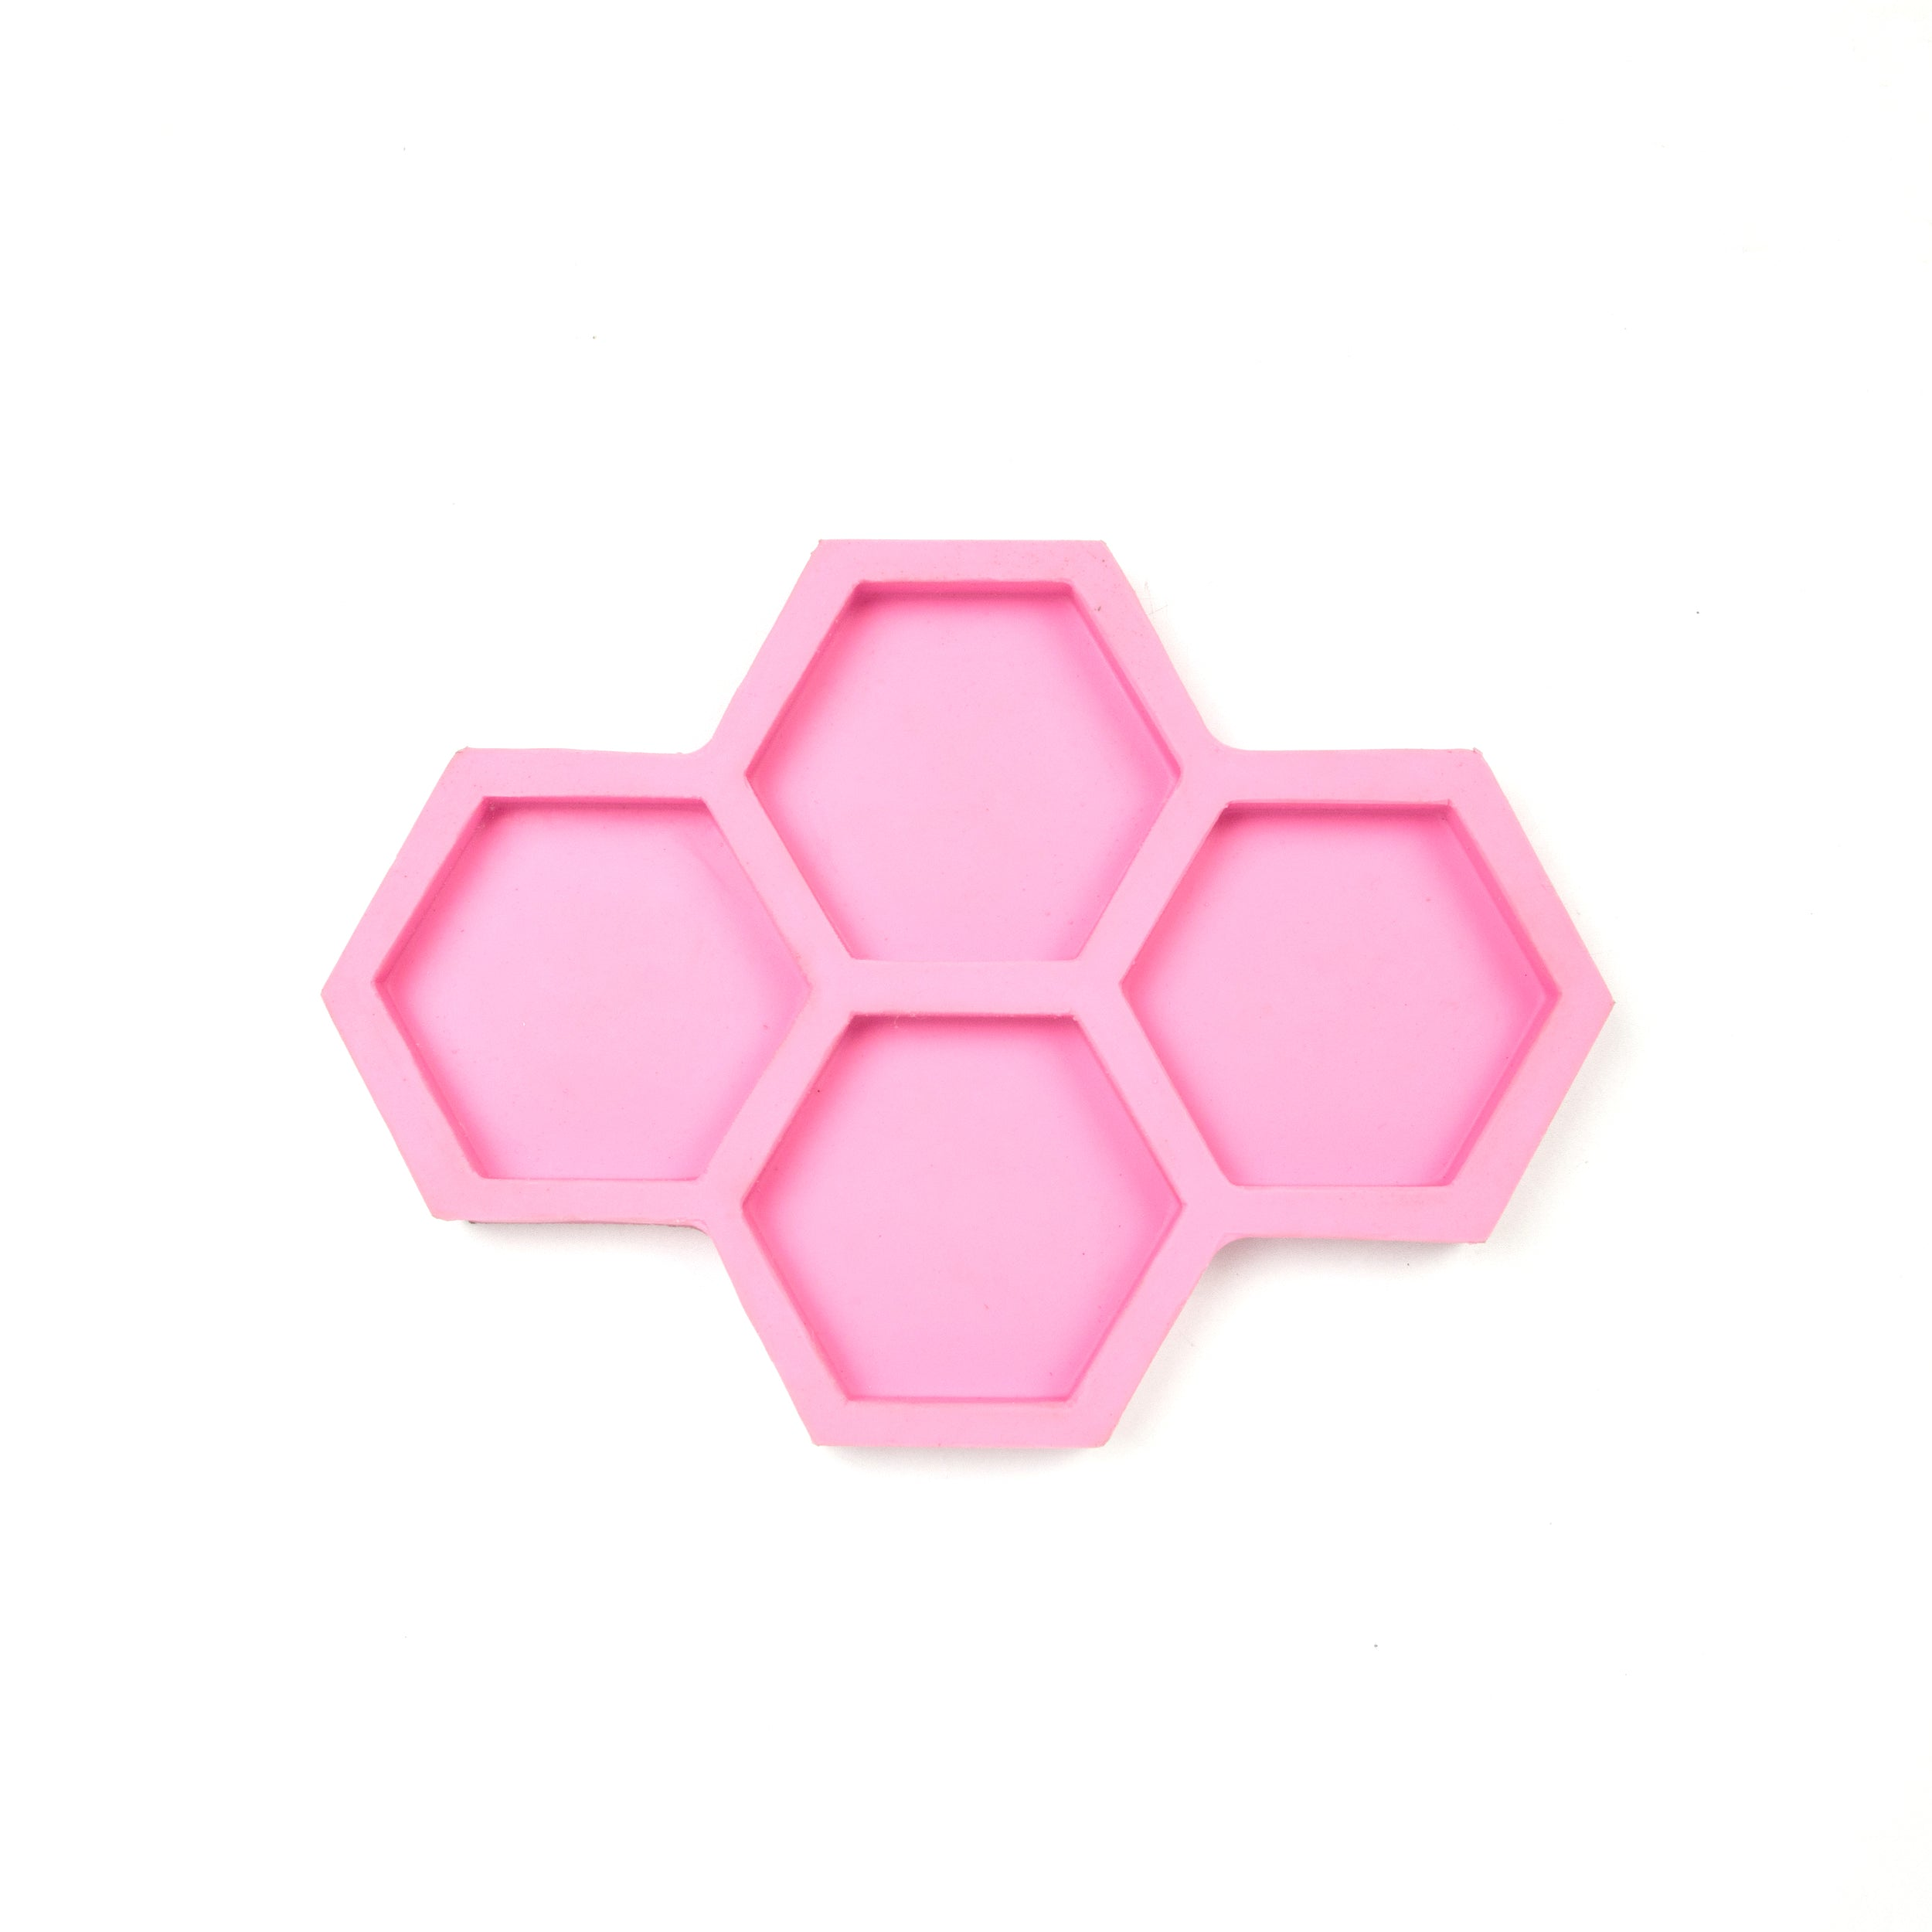 Hexagon Tile Mold